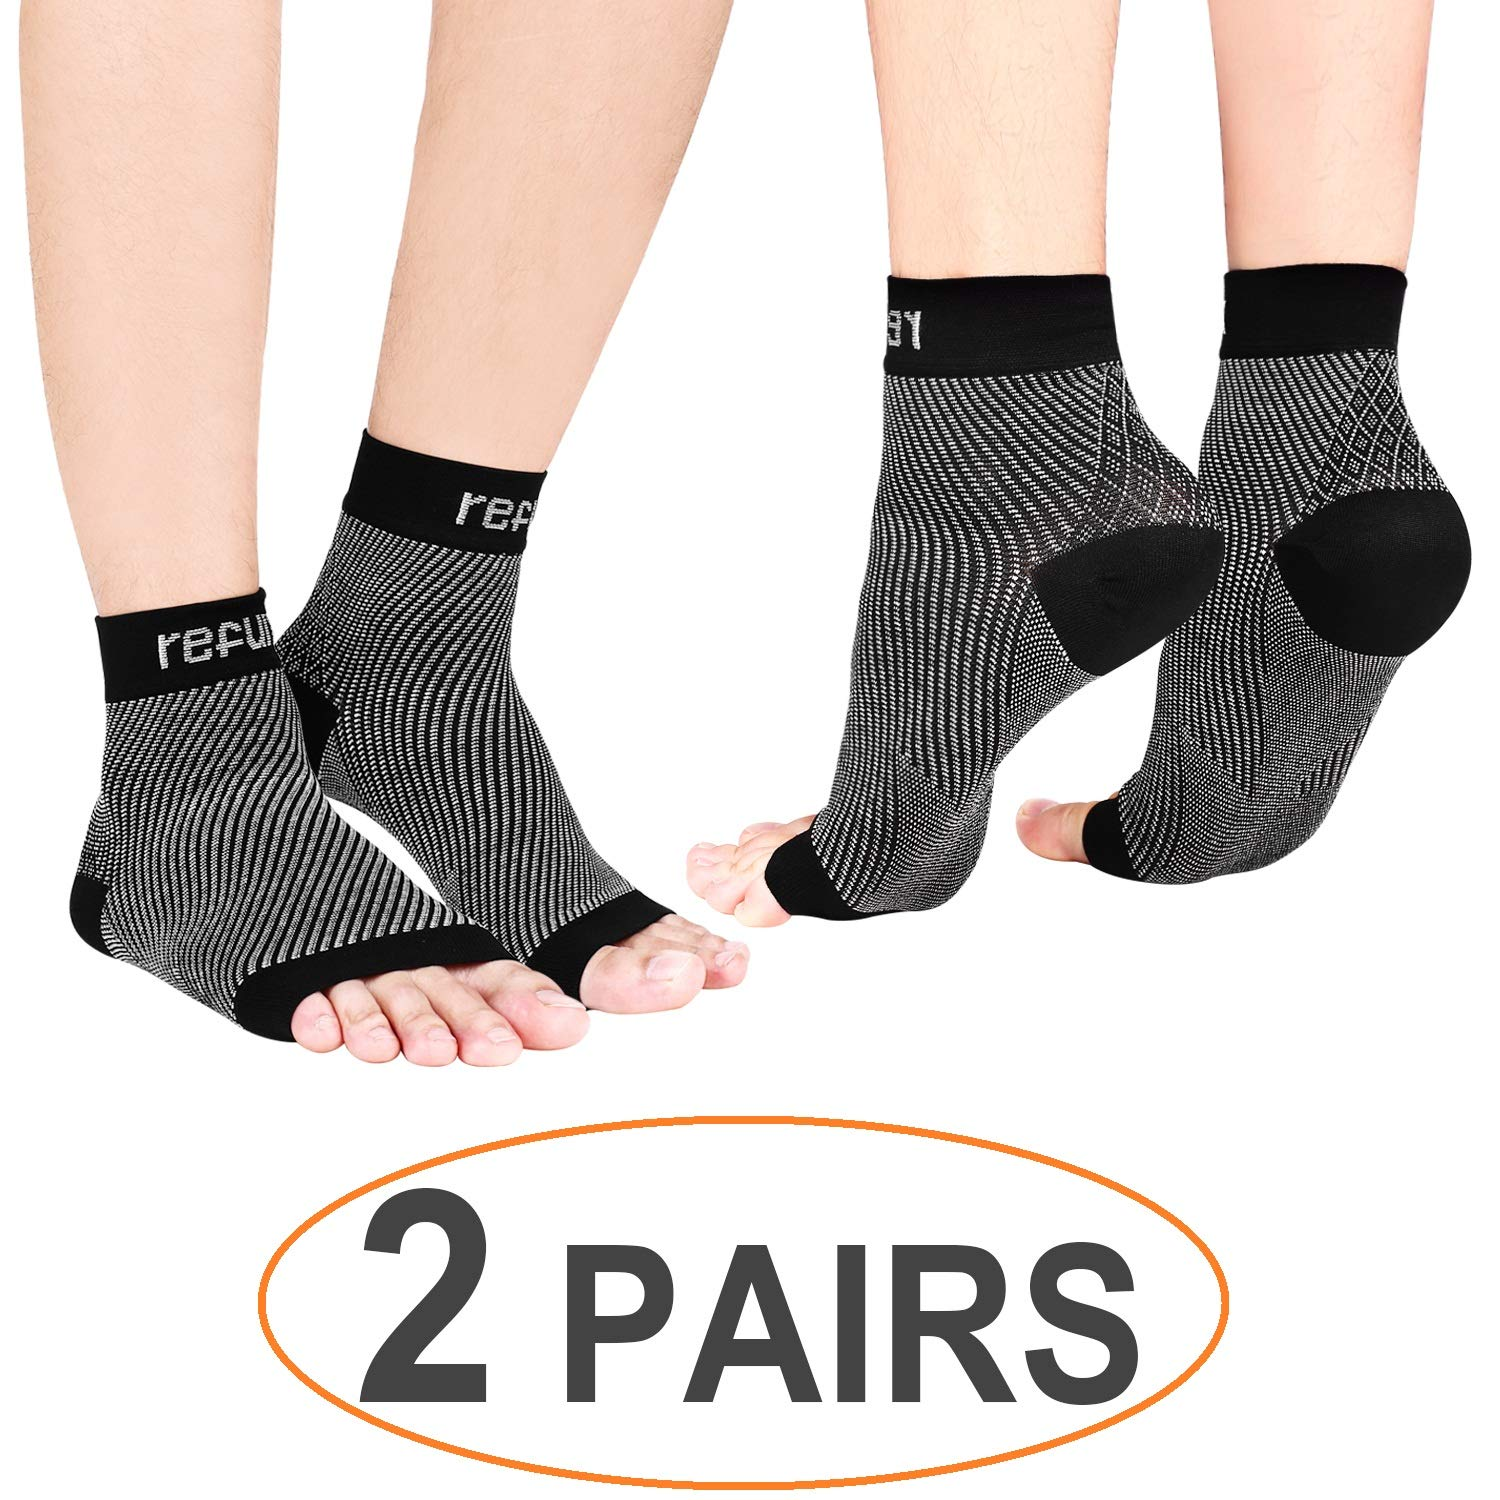 refun Plantar Fasciitis Socks (2 Pairs), Compression Foot Sleeves with Heel Arch & Ankle Support, Great Foot Care Compression Sleeve for Men & Women, Increase Blood Circulation, Relieve Arch Pain by refun